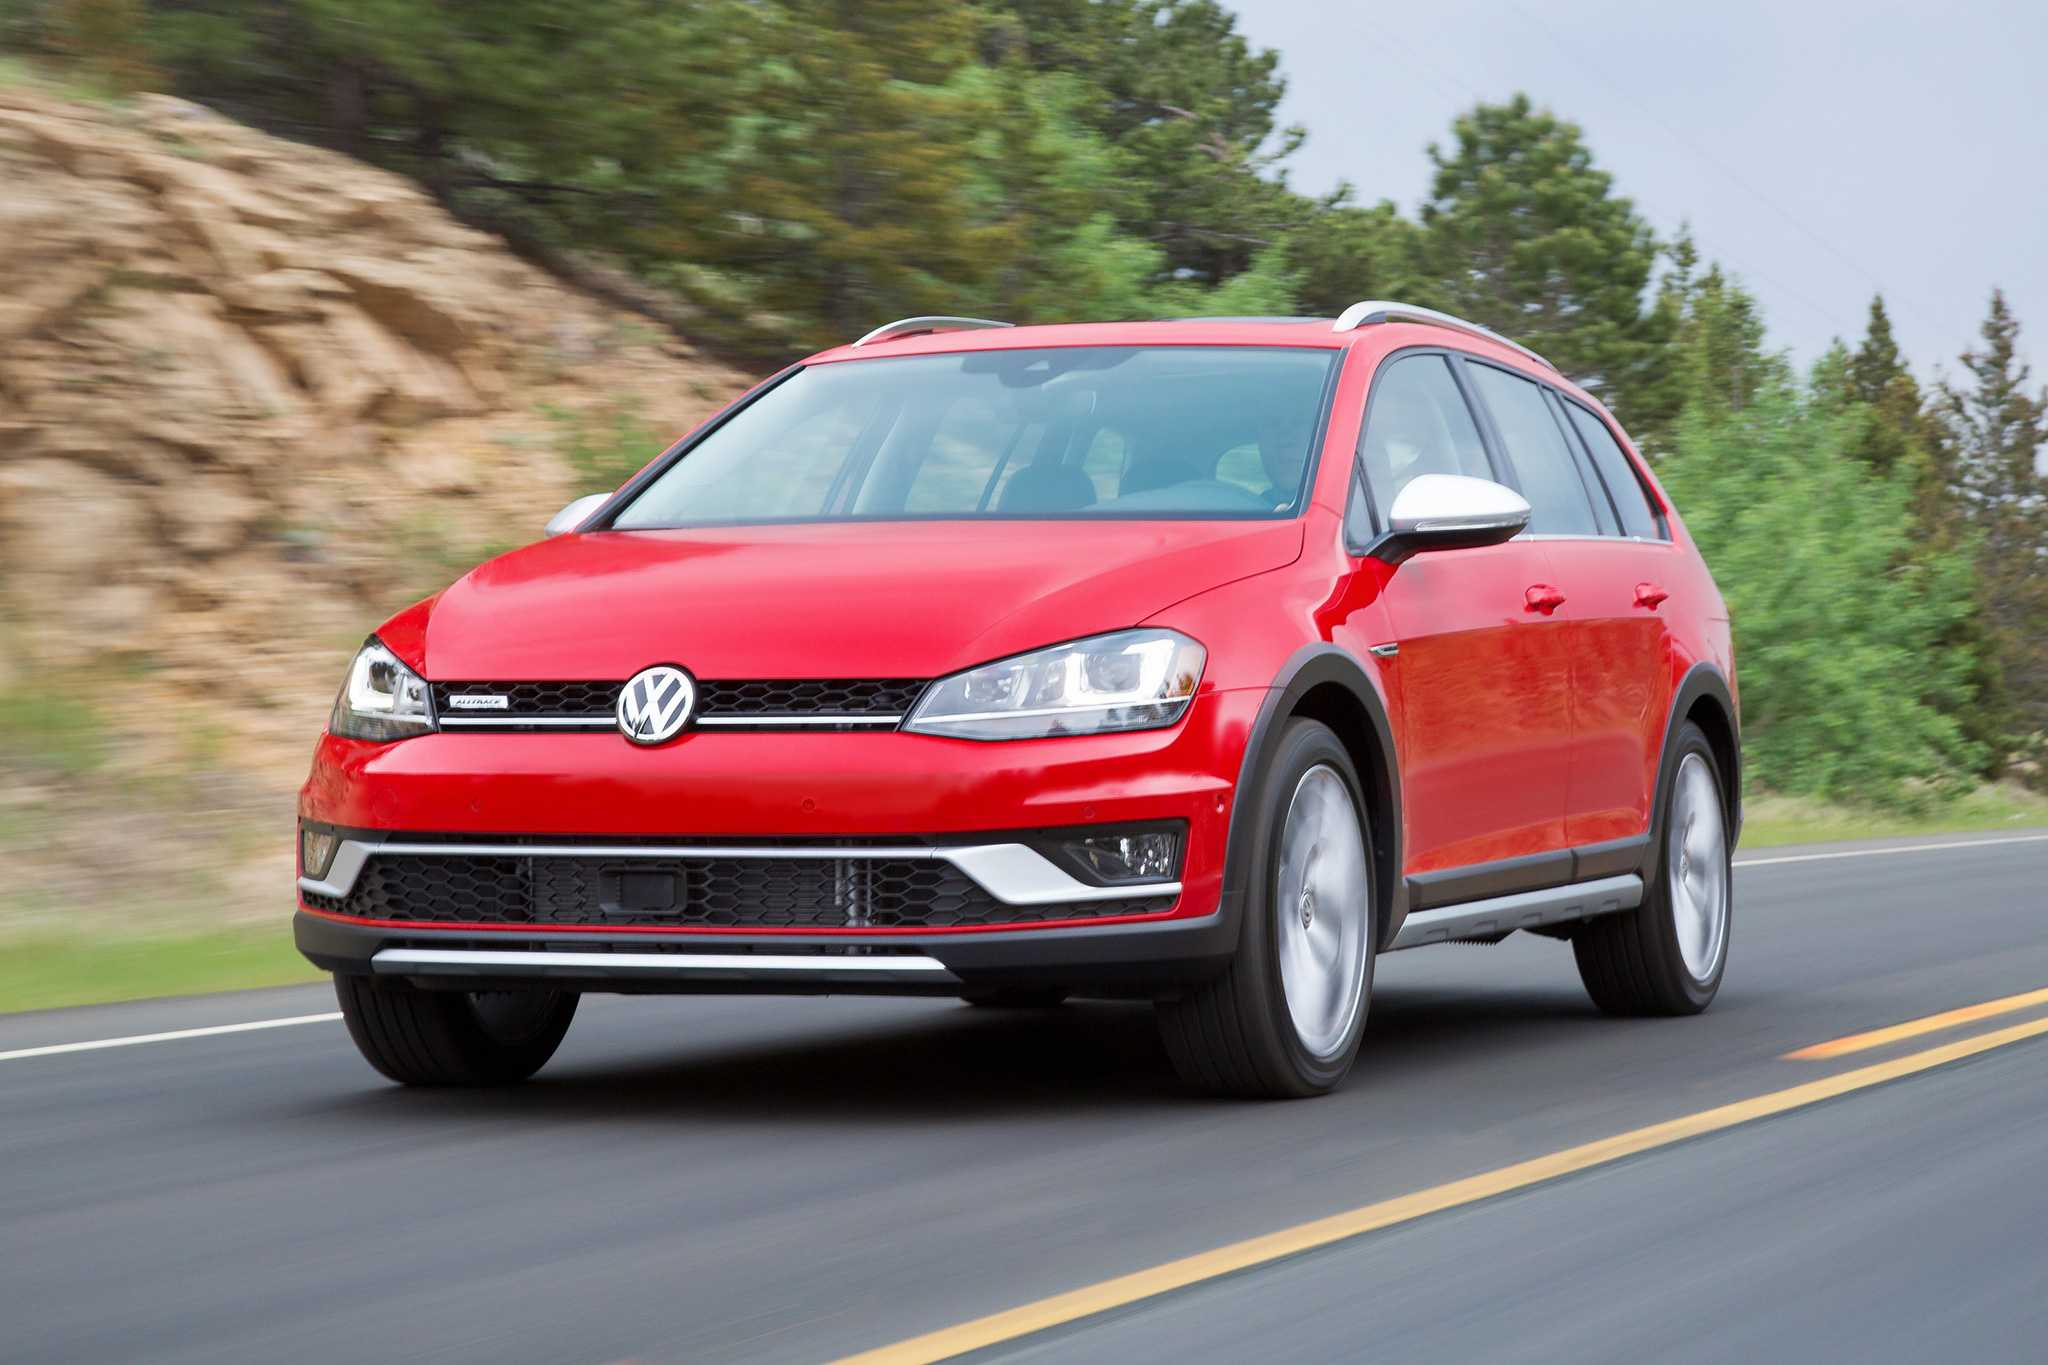 2017 Volkswagen Golf Alltrack Pricing Starts At $26,670